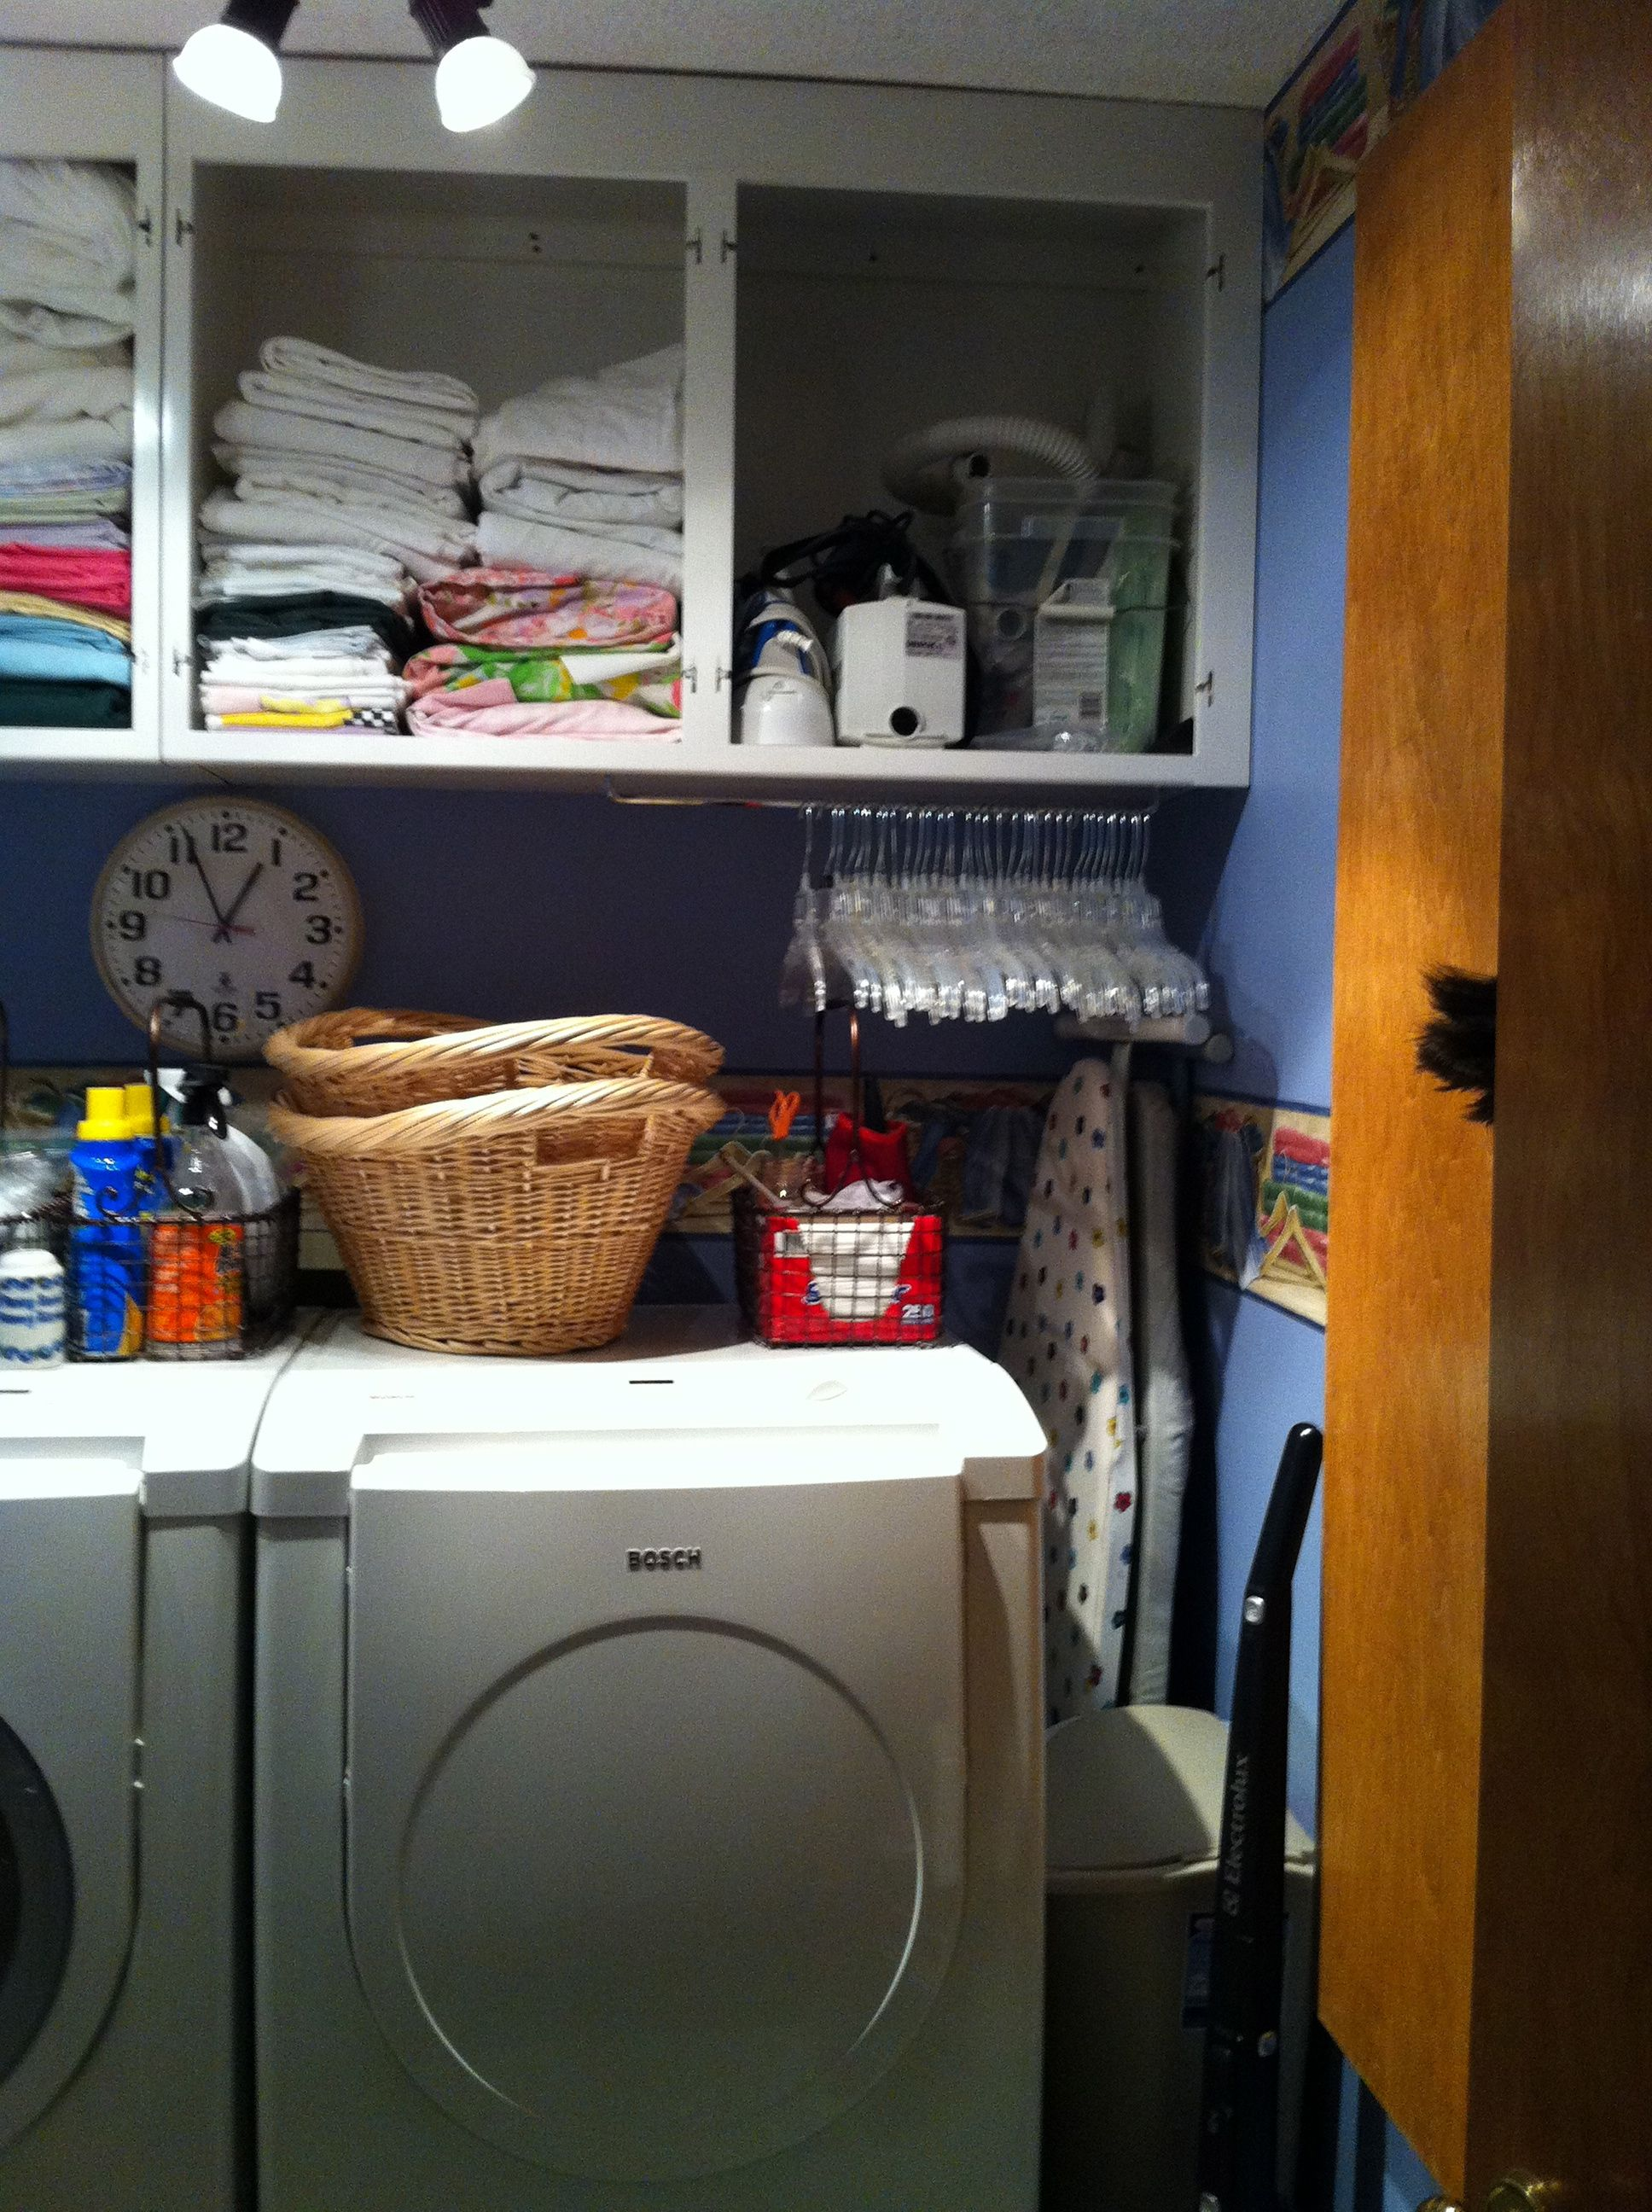 A towel bar mounted underneath a cabinet provides tidy storage for clothes hangers.